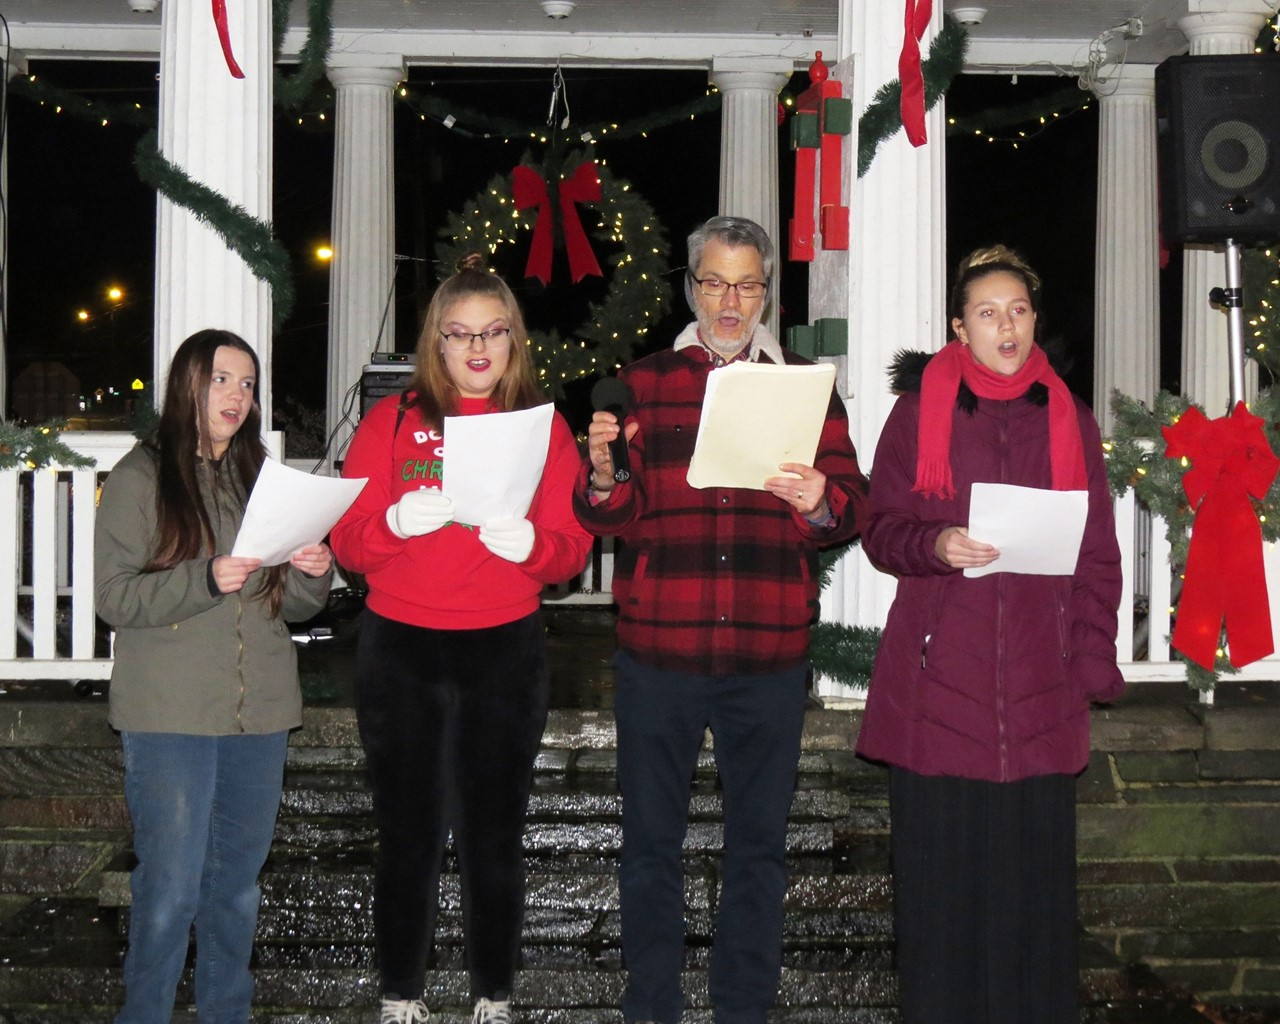 High school students singing Christmas carols on the park